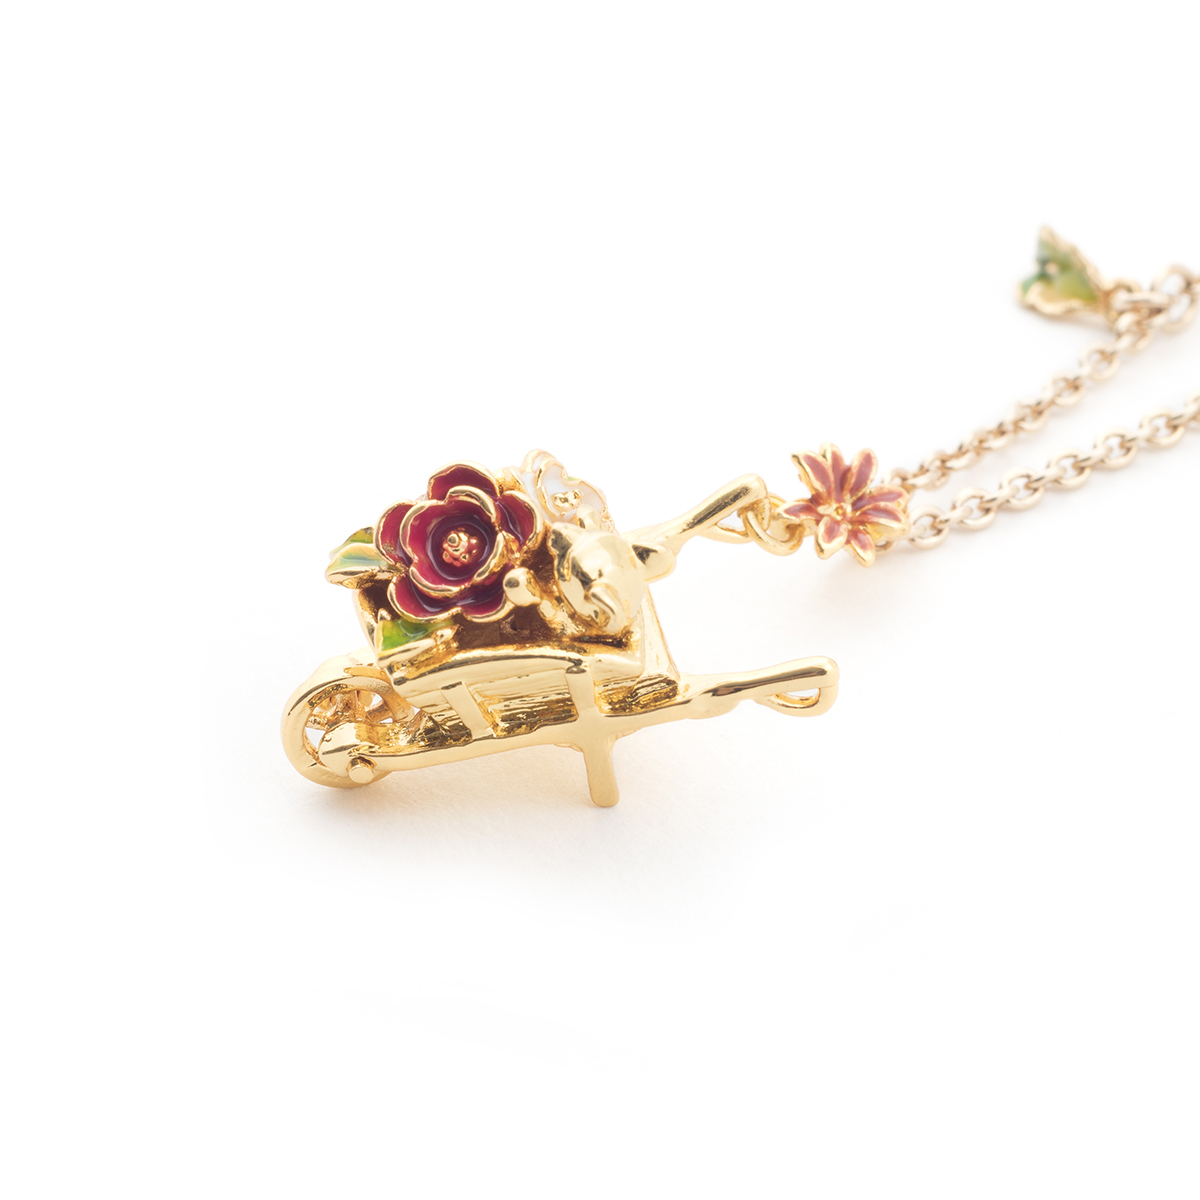 Potting Shed Wheelbarrow Pendant - Gold